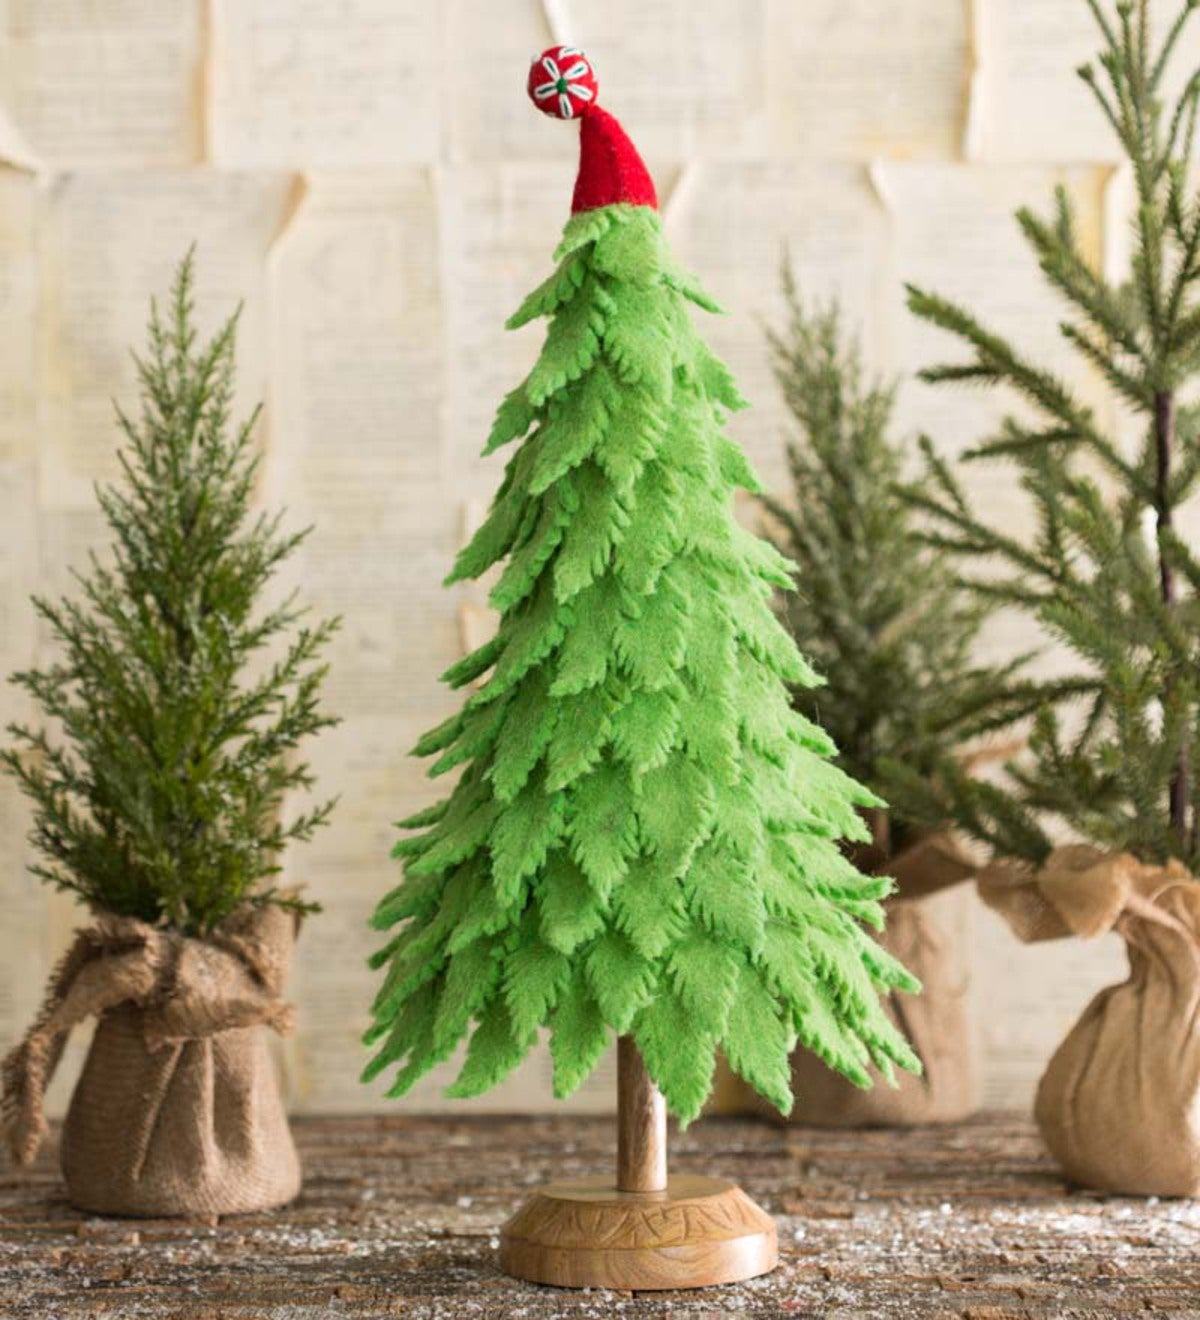 Handcrafted Felt Christmas Tree - Green